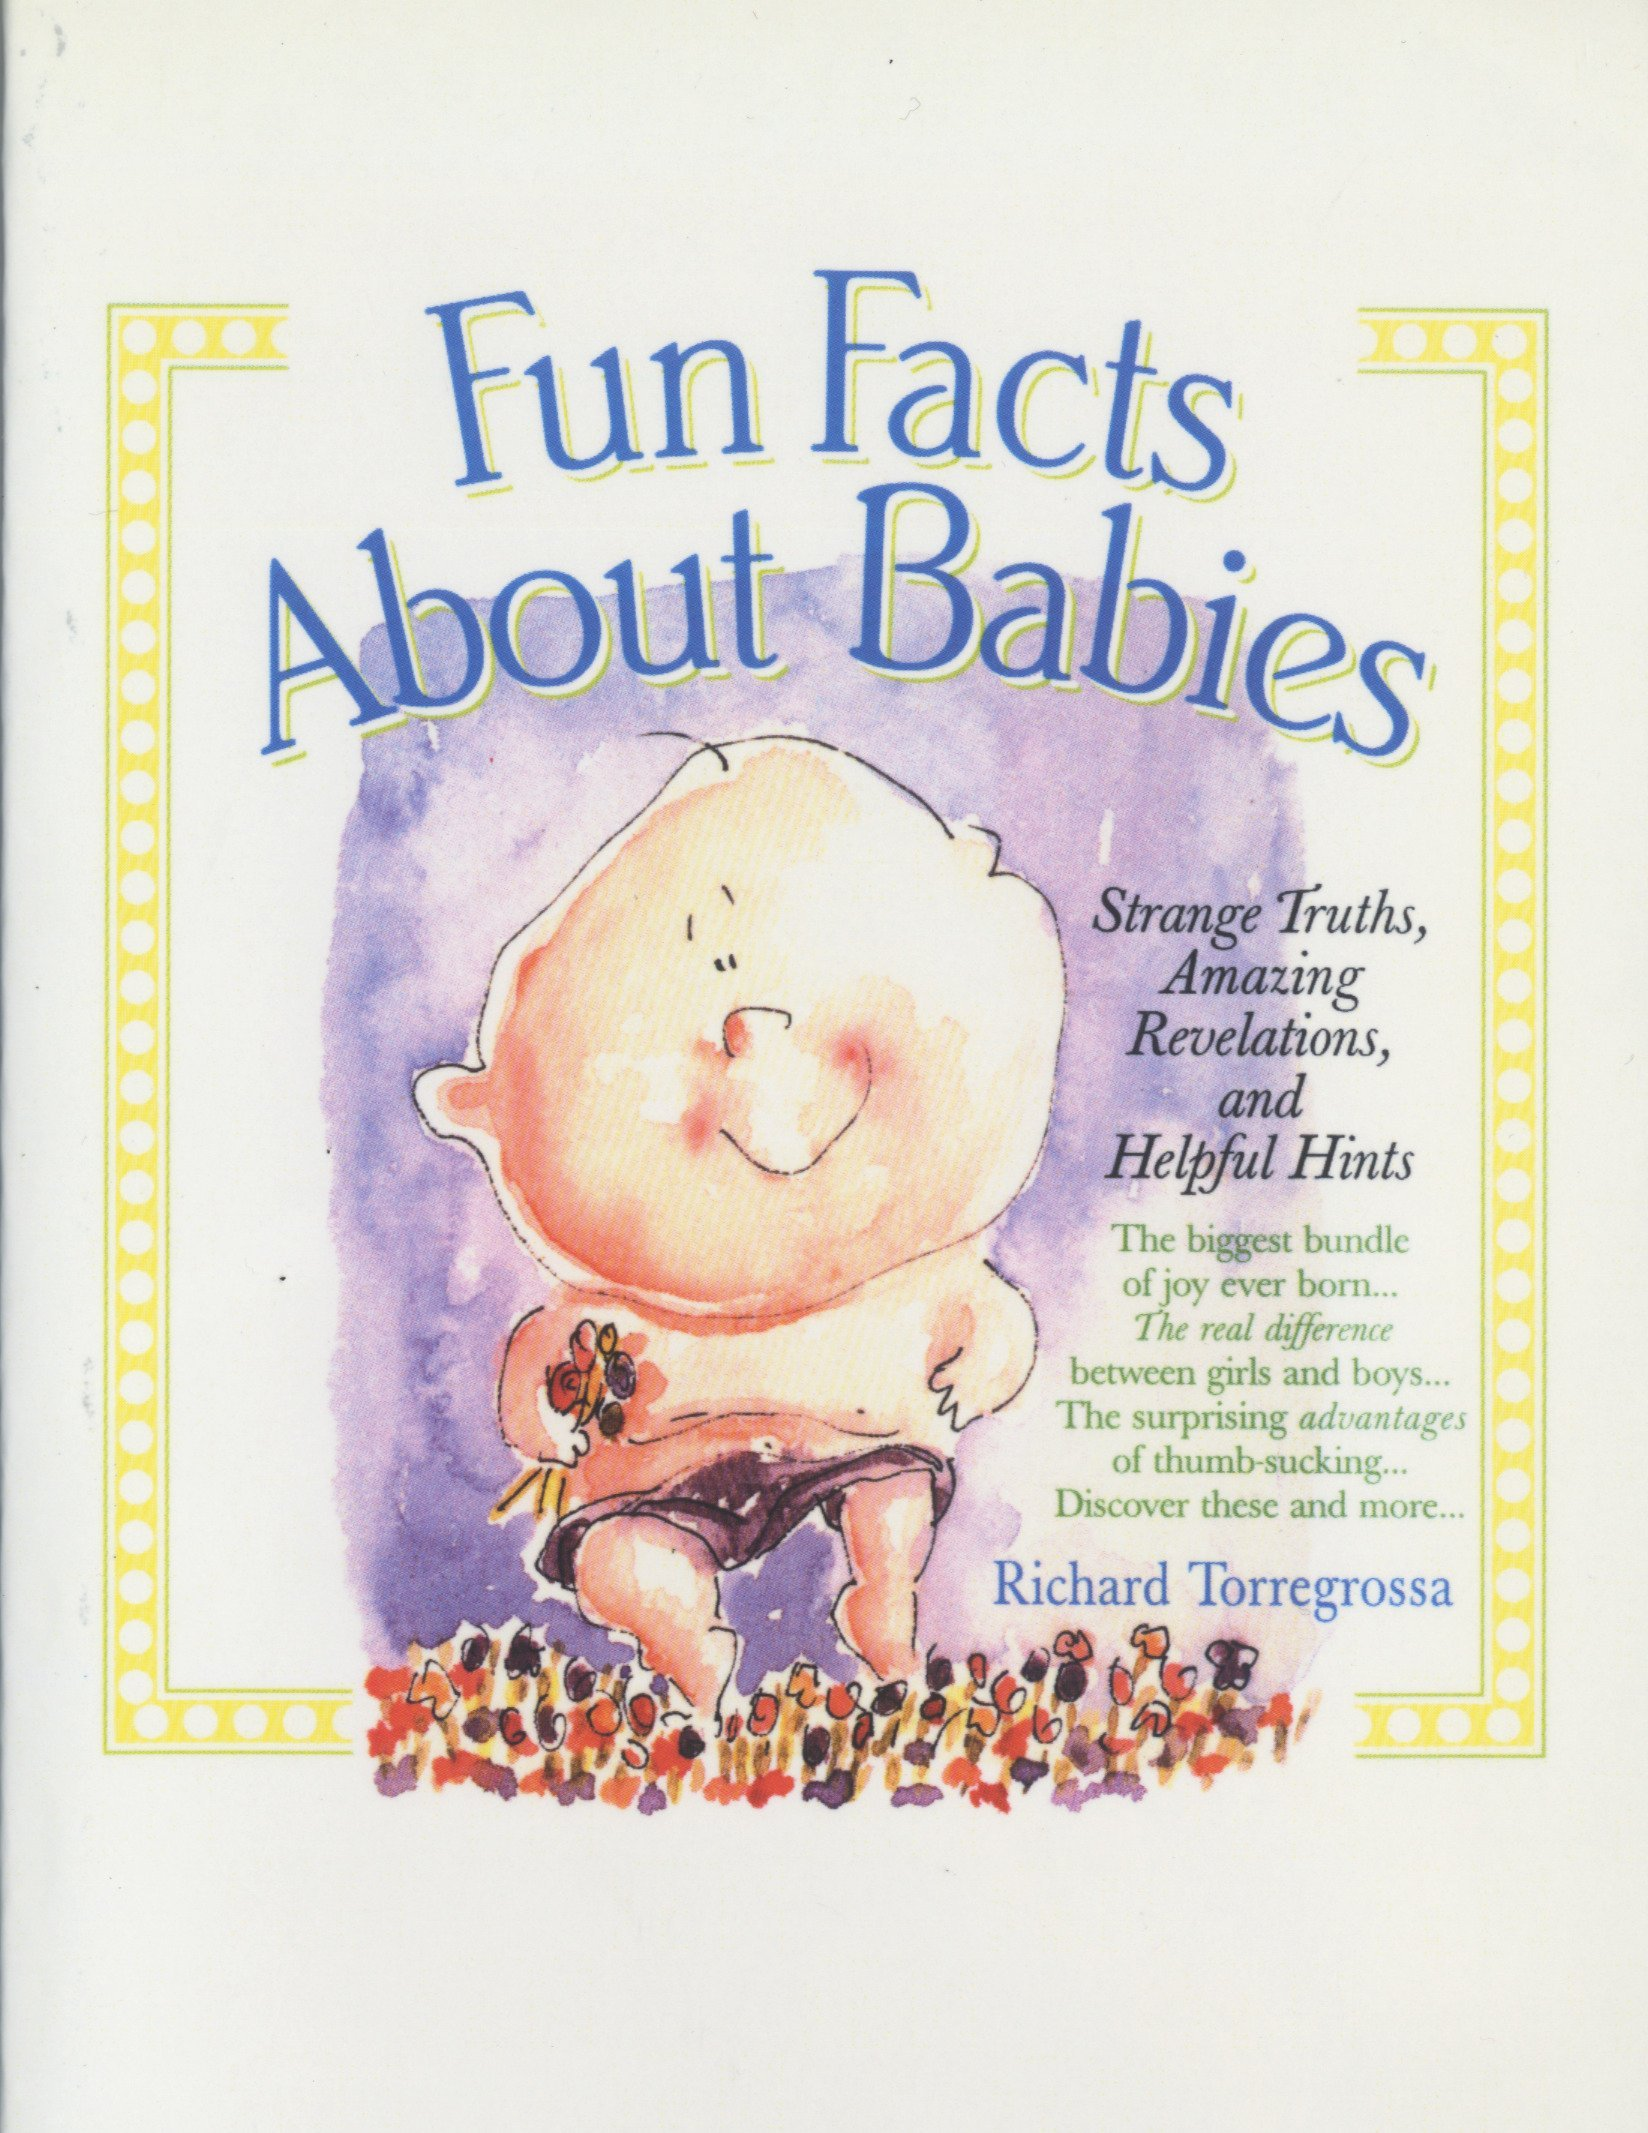 Fun Facts About Babies: Strange Truths, Amazing Revelations, and Helpful Hints pdf